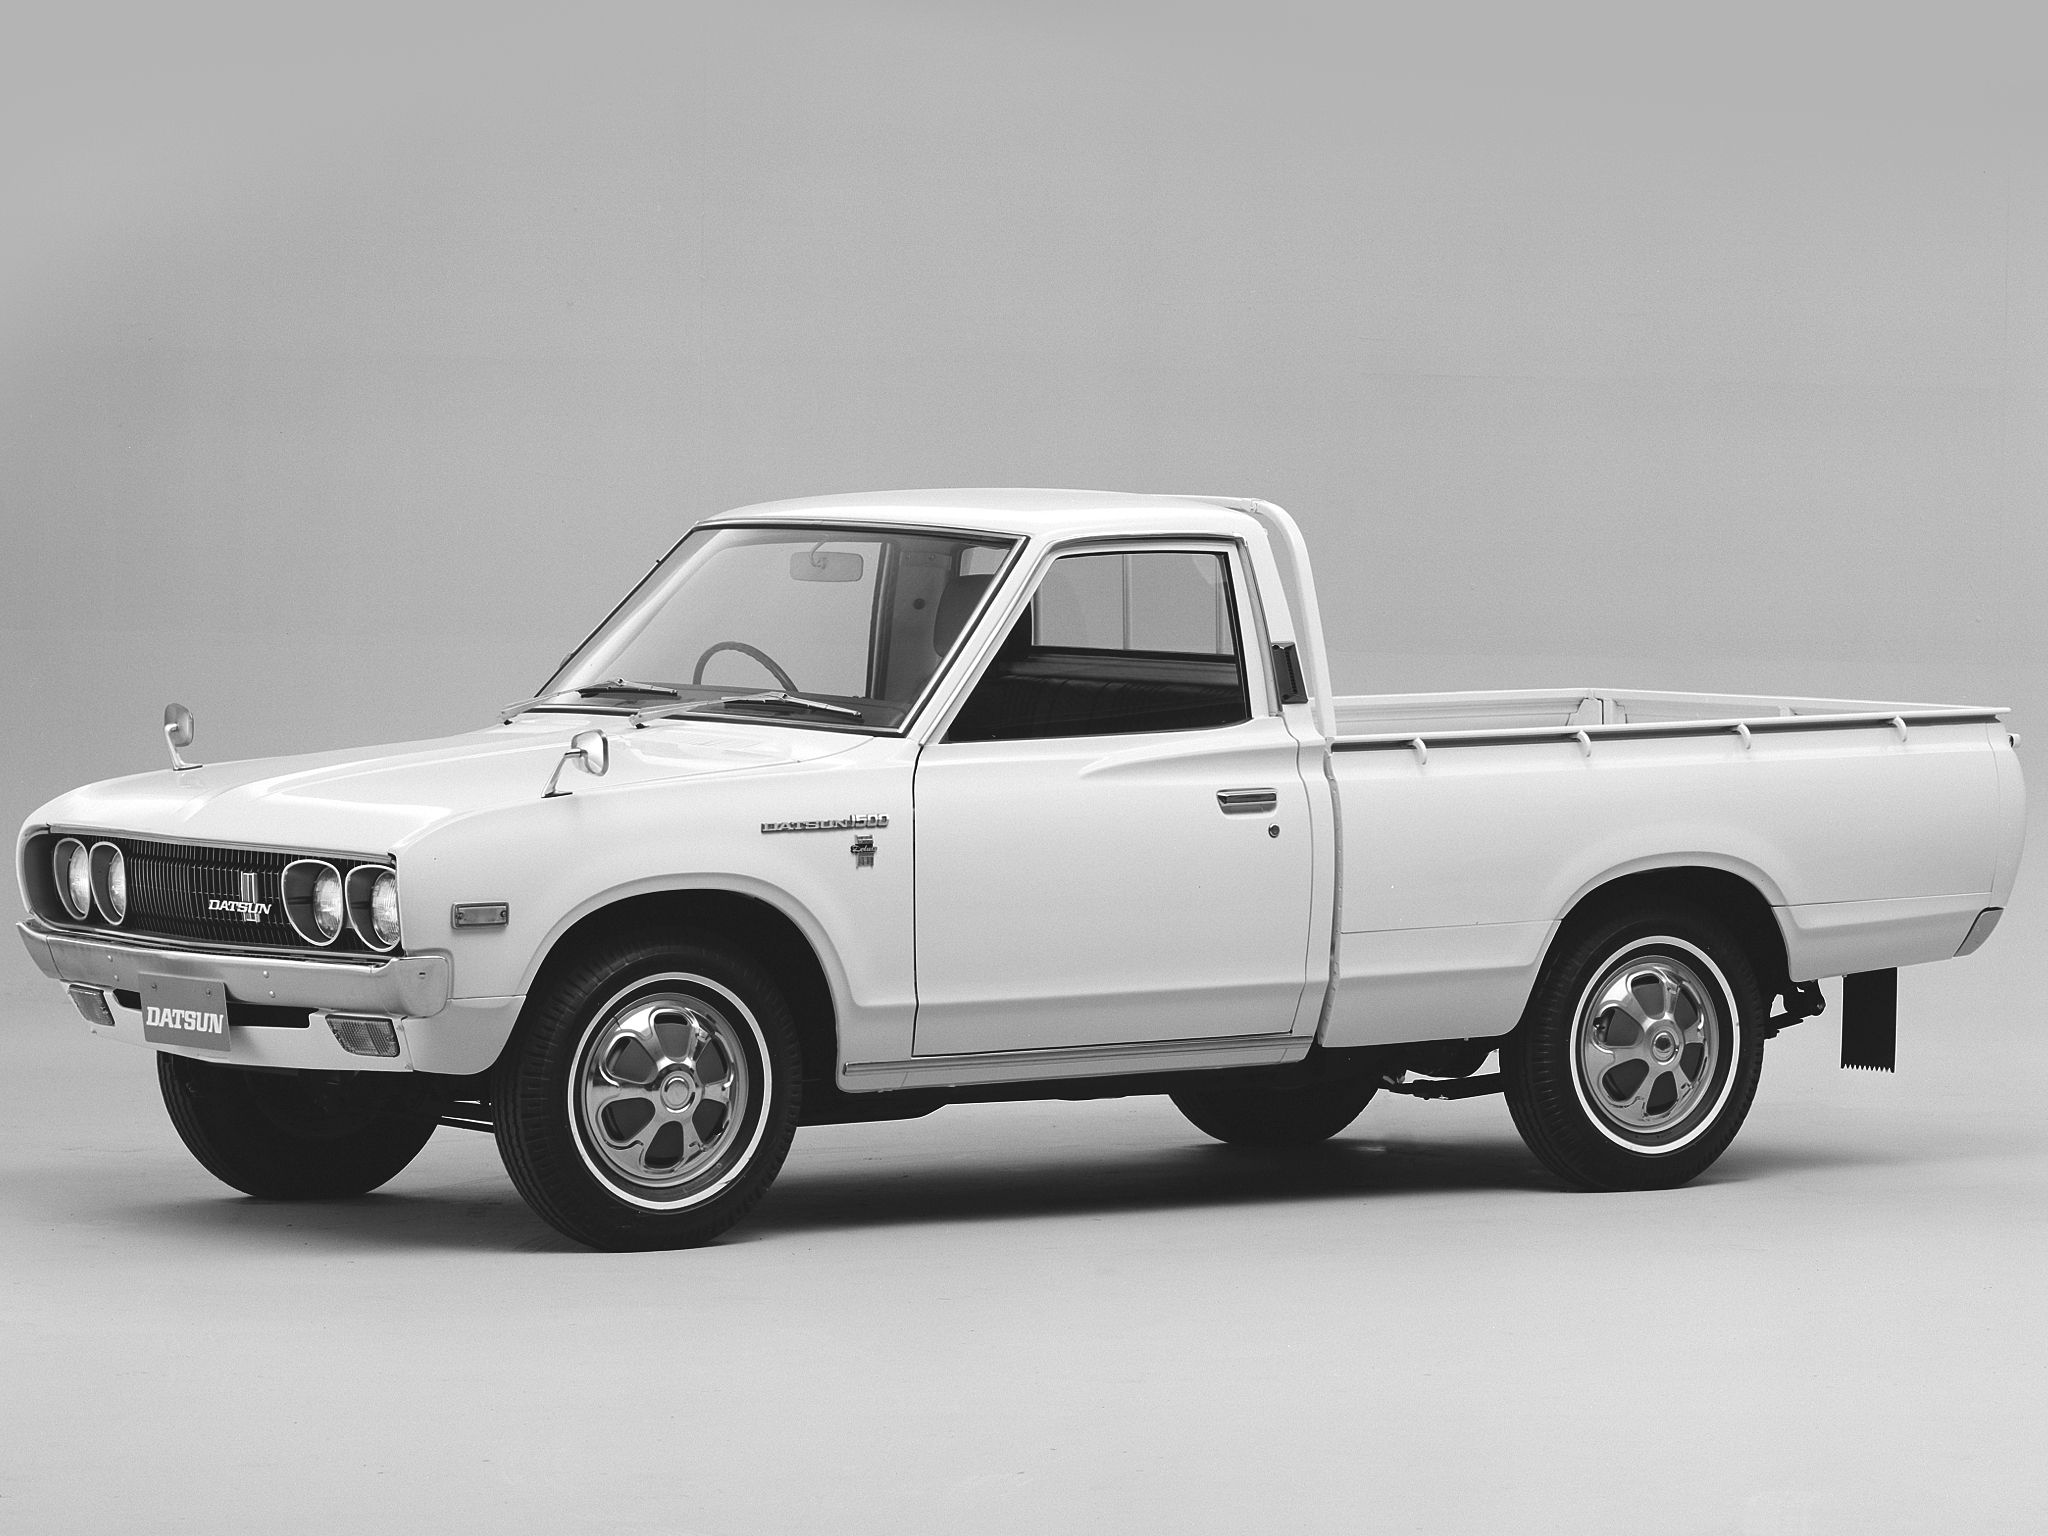 620 Datsun Pickup | Rollin | Pinterest | Cars, Nissan and Wheels